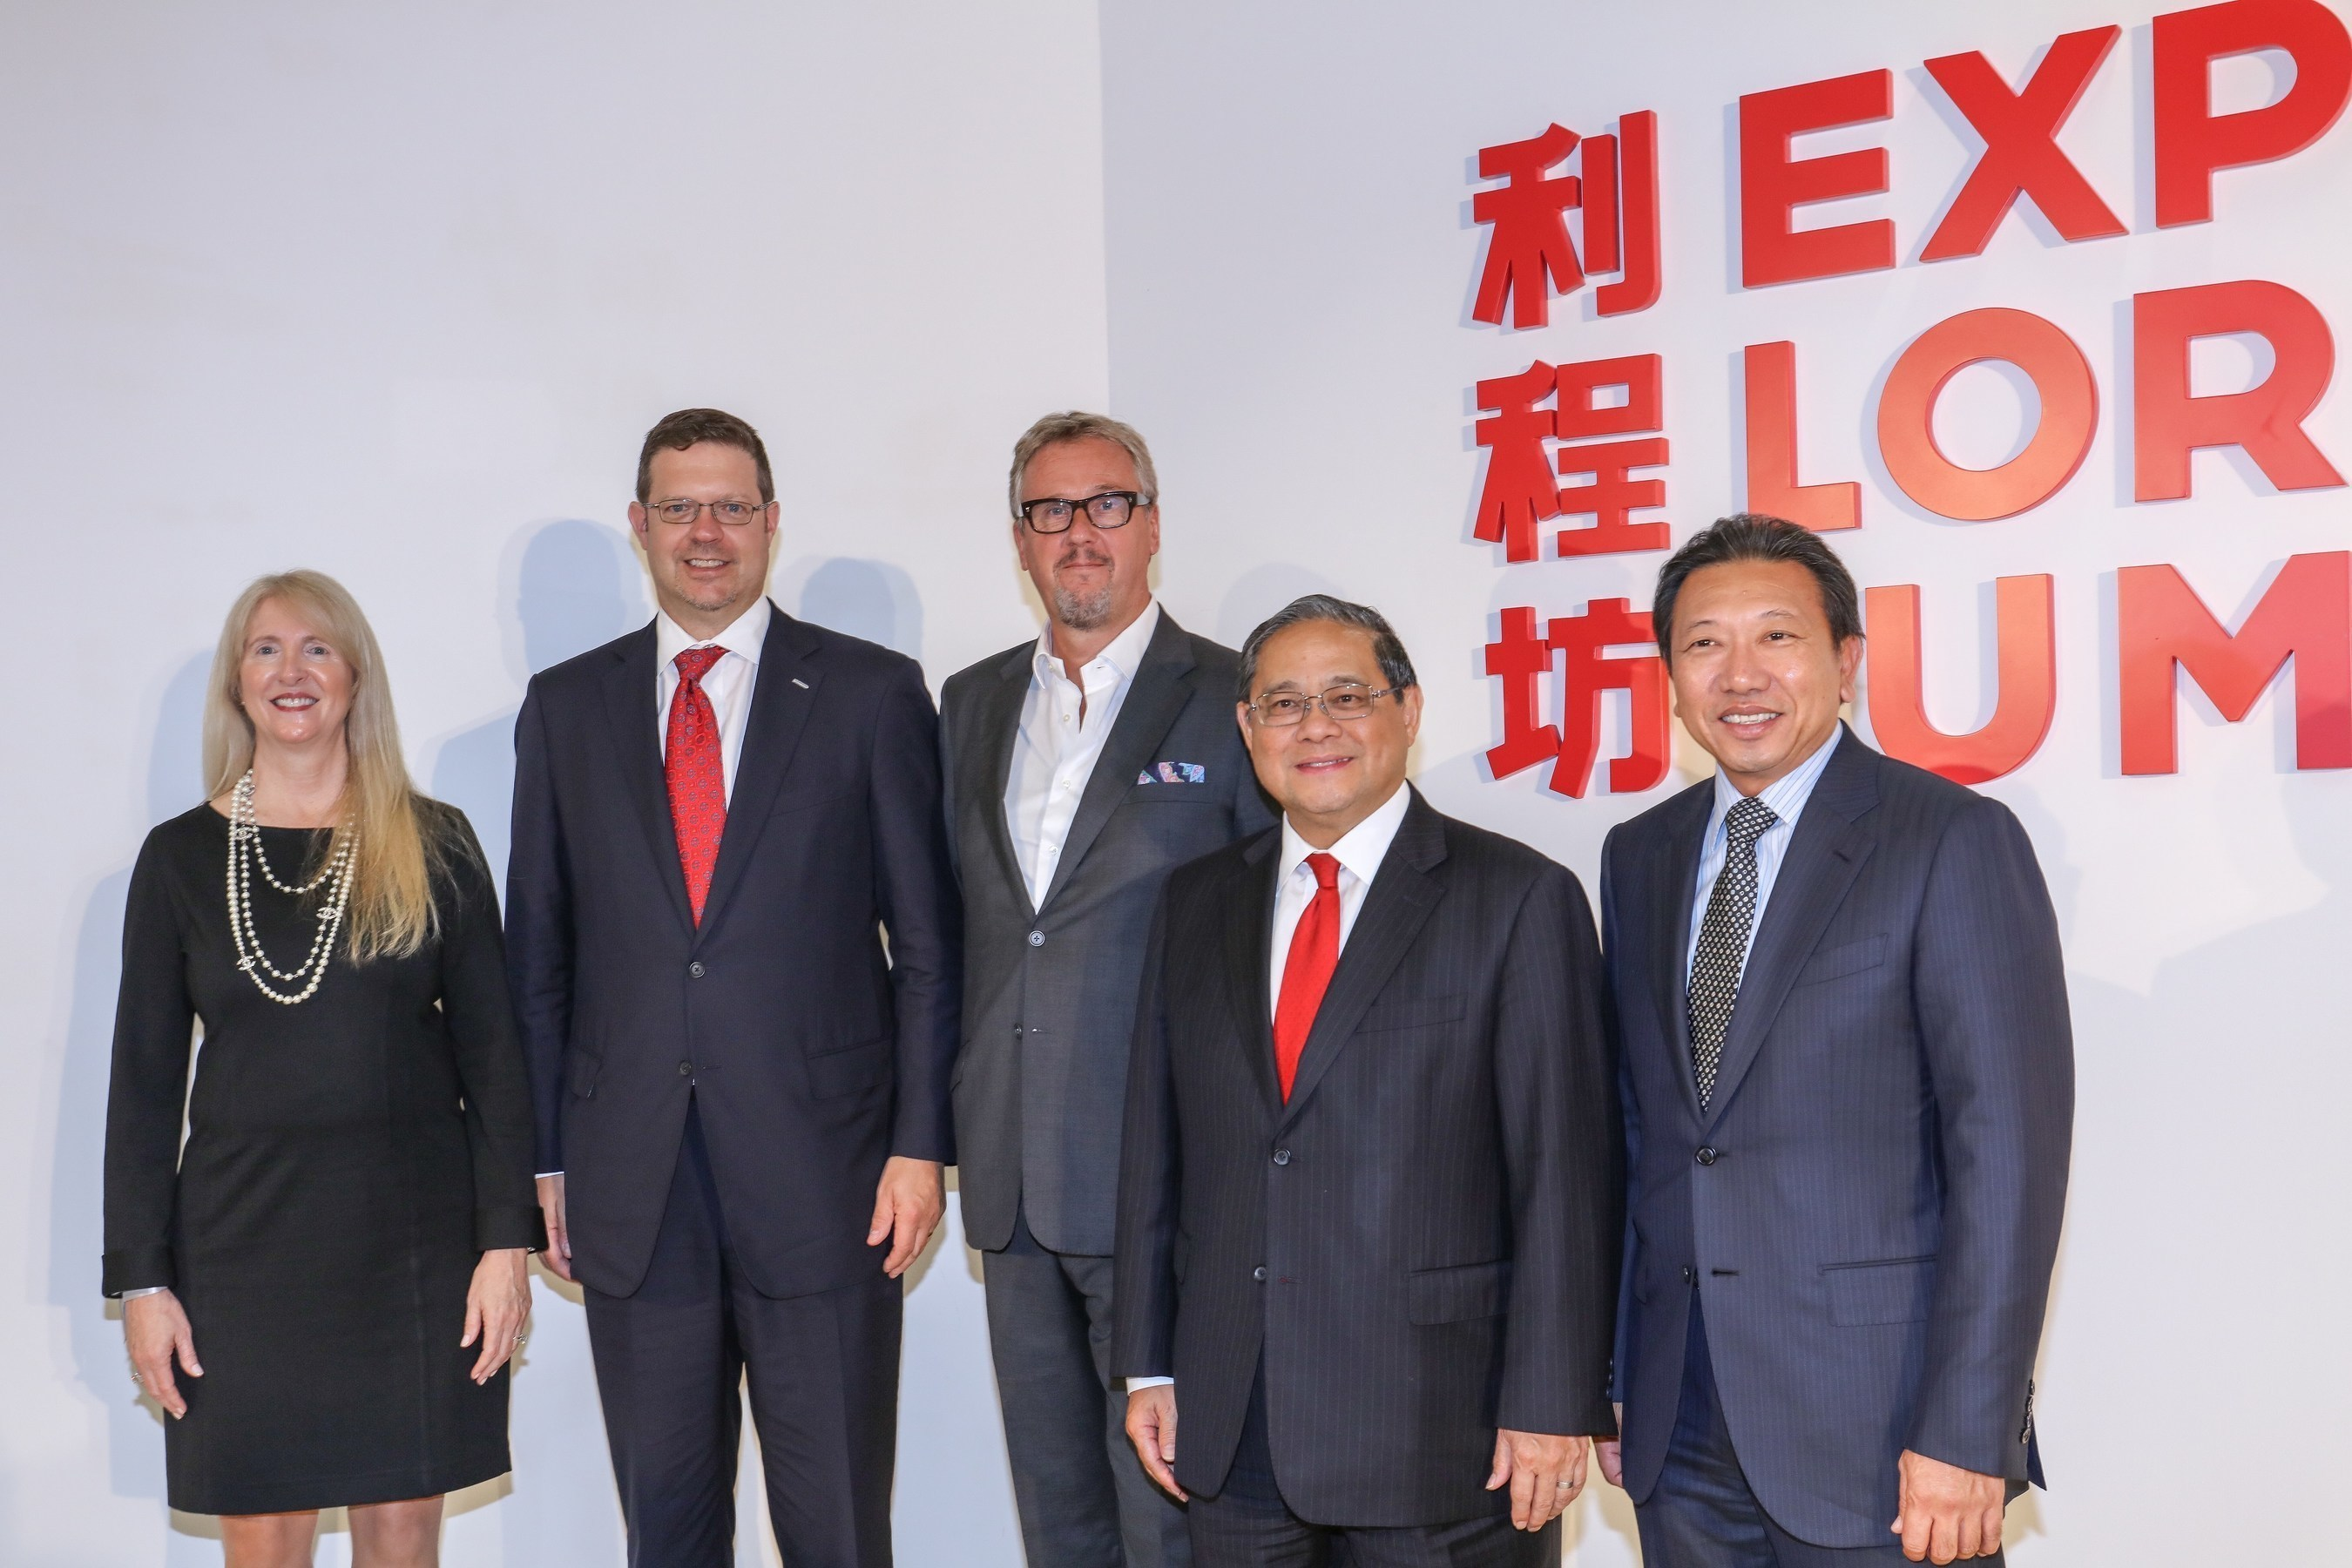 Launching the Explorium, a Fung Group initiative in Shanghai that is exploring the omnichannel future of retail. From left to right: Nancy Thomas, Managing Partner, Consulting Greater China Group (IBM); Stephen Laughlin, Global Retail Industry Leader, IBM; Simeon Piasecki, Director, Explorium; Dr. Victor Fung, Chairman, Fung Group, and Lawrence Chia, Group Chairman, Pico.